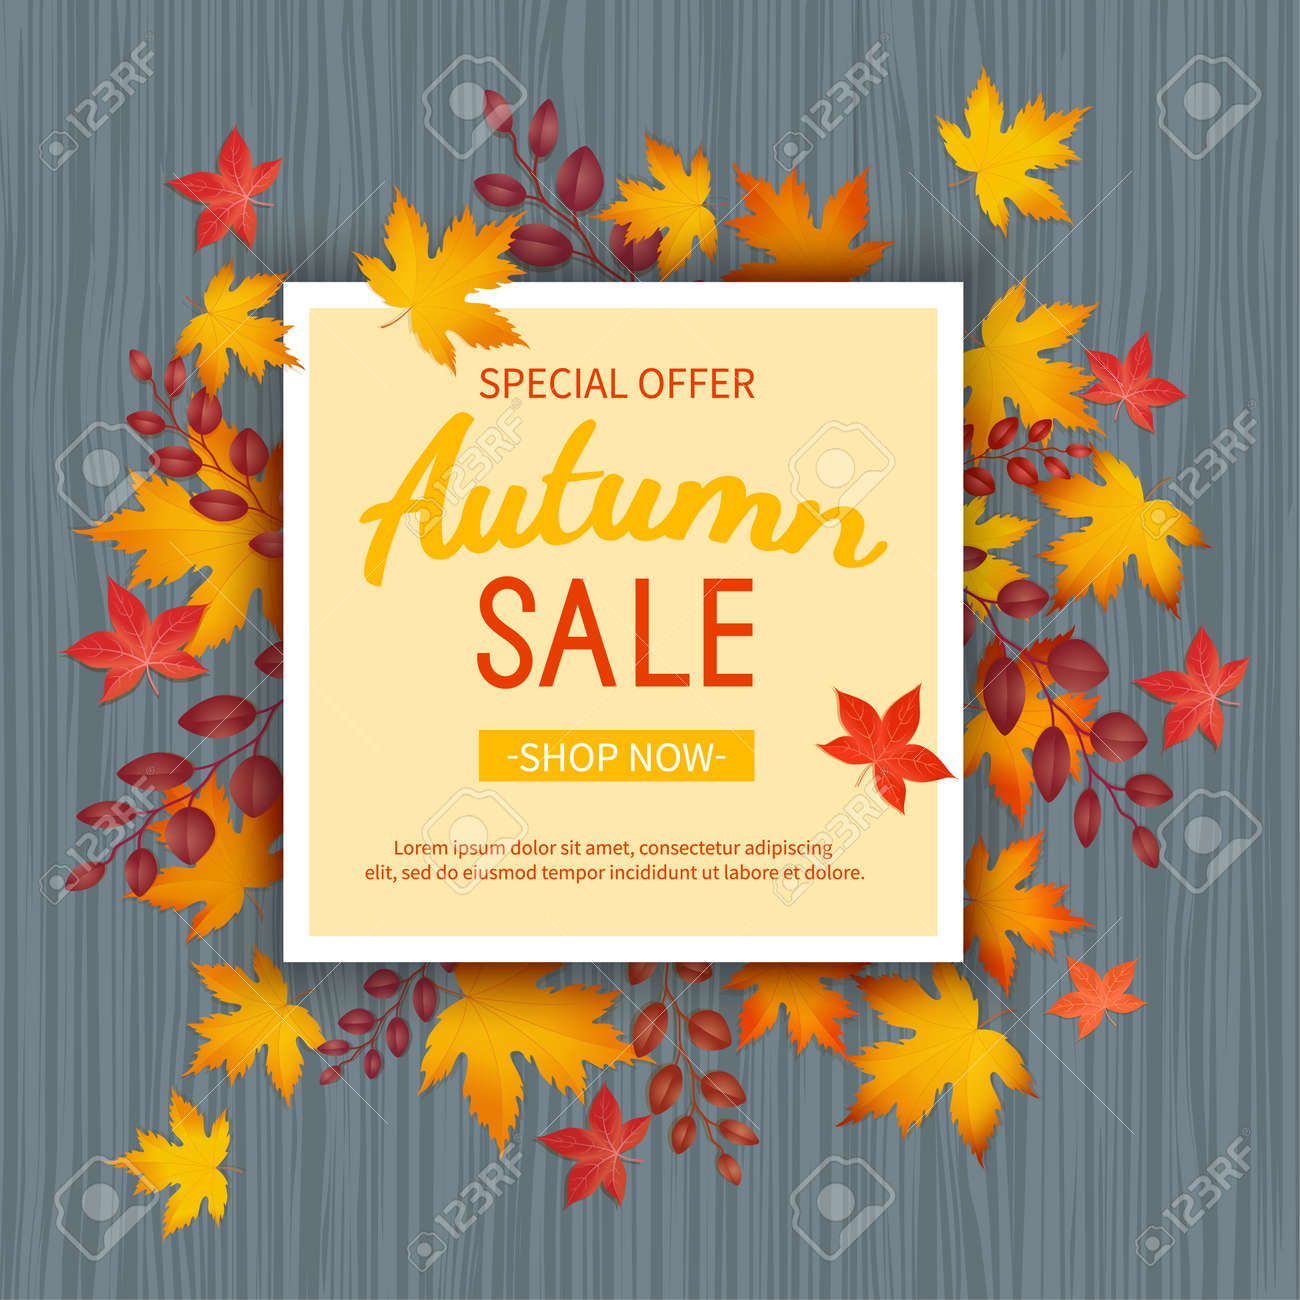 Autumn sale banner. Special seasonal discount offer. leaves at rectangular frame on a wooden table. Vector illustration. Top view - 155410472